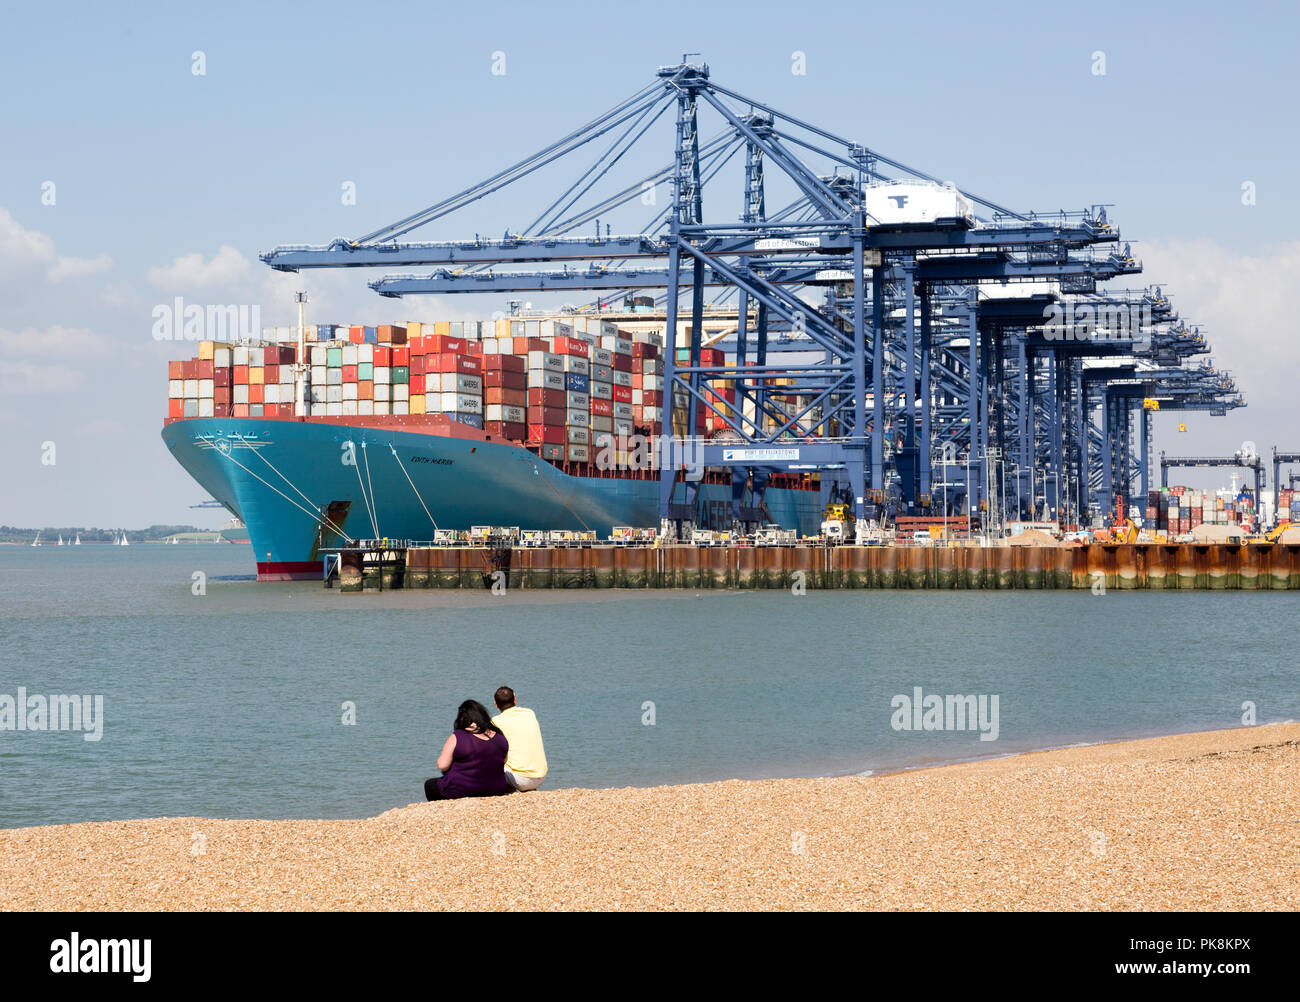 People sitting on beach as cranes load Edith Maersk container ship, Port of Felixstowe, Suffolk, England, UK - Stock Image